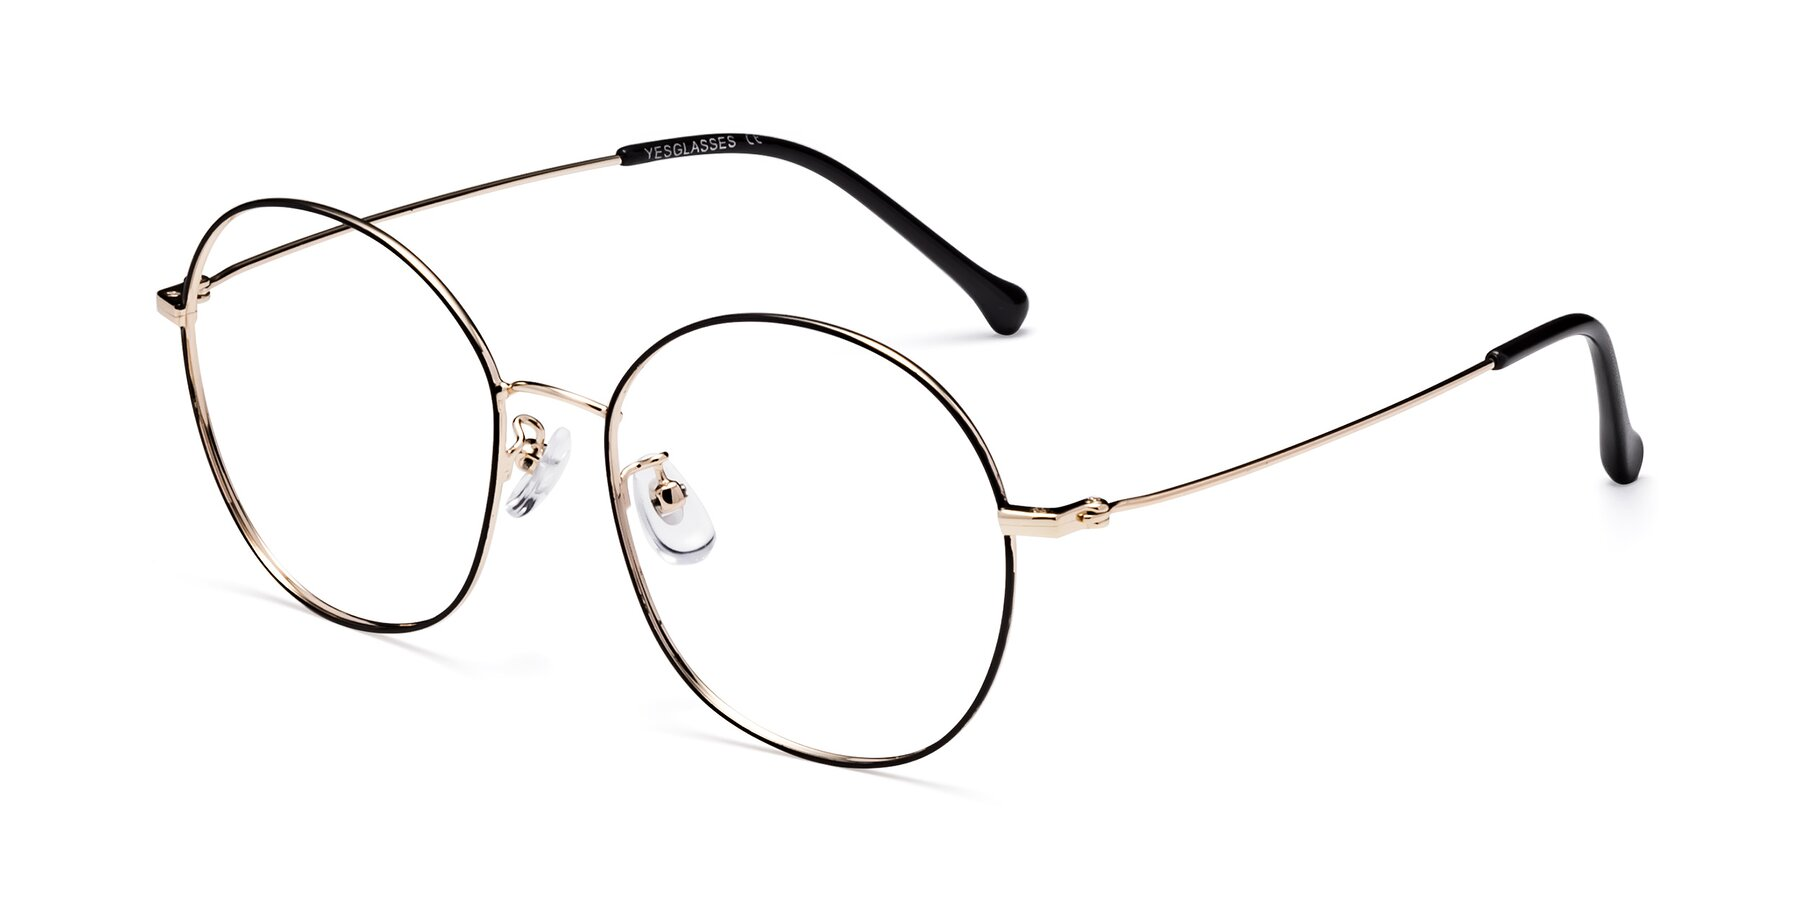 Angle of Dallas in Black-Gold with Clear Blue Light Blocking Lenses